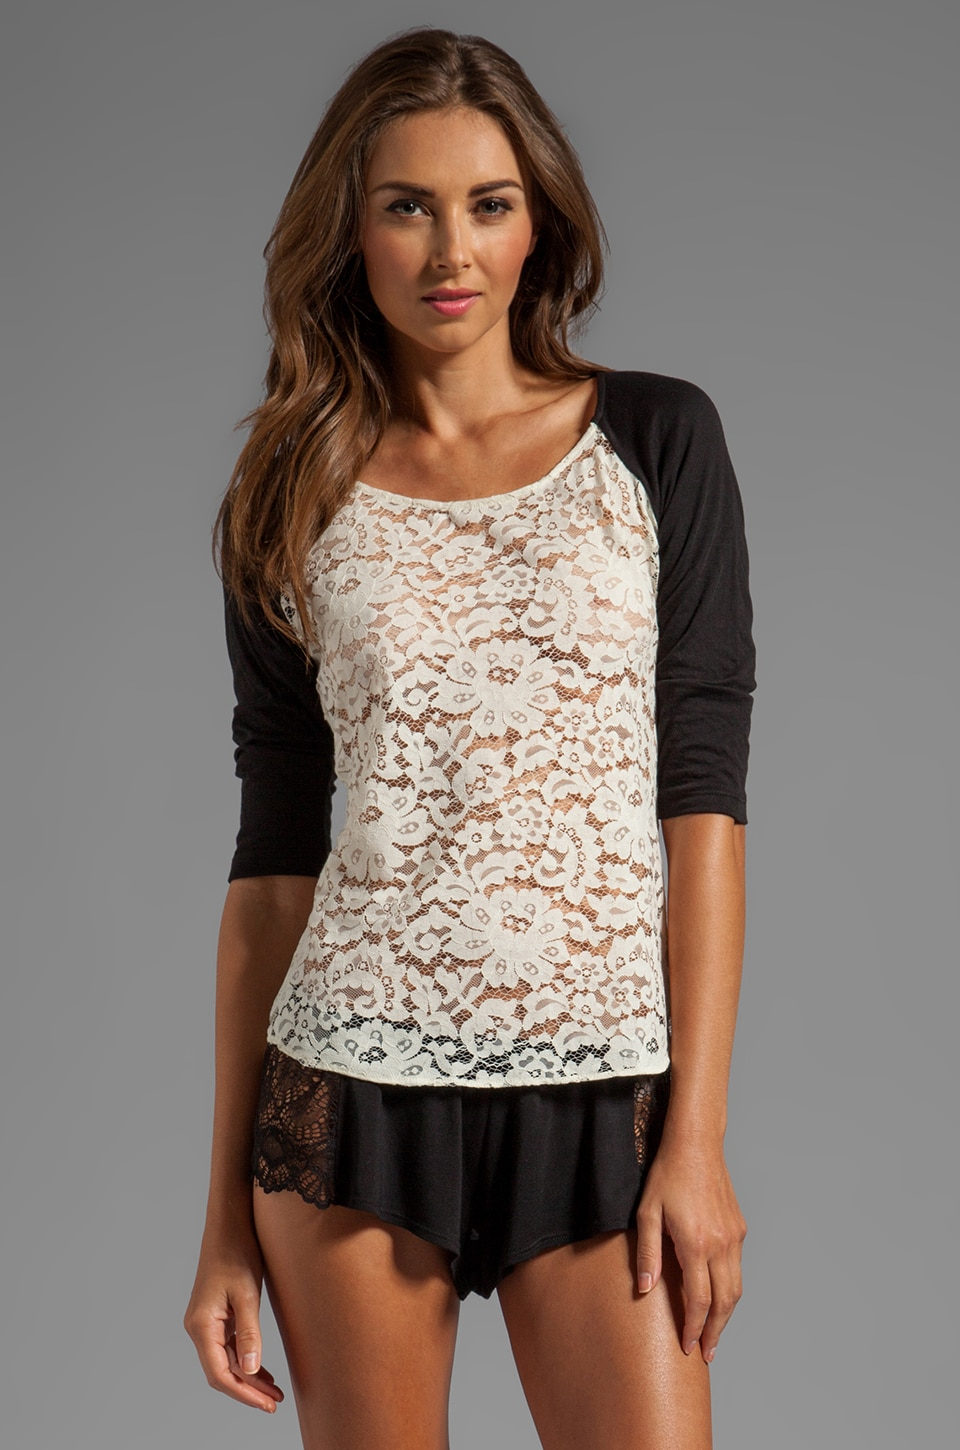 zinke Megan Lace Raglan Baseball Tee in Ivory/Black